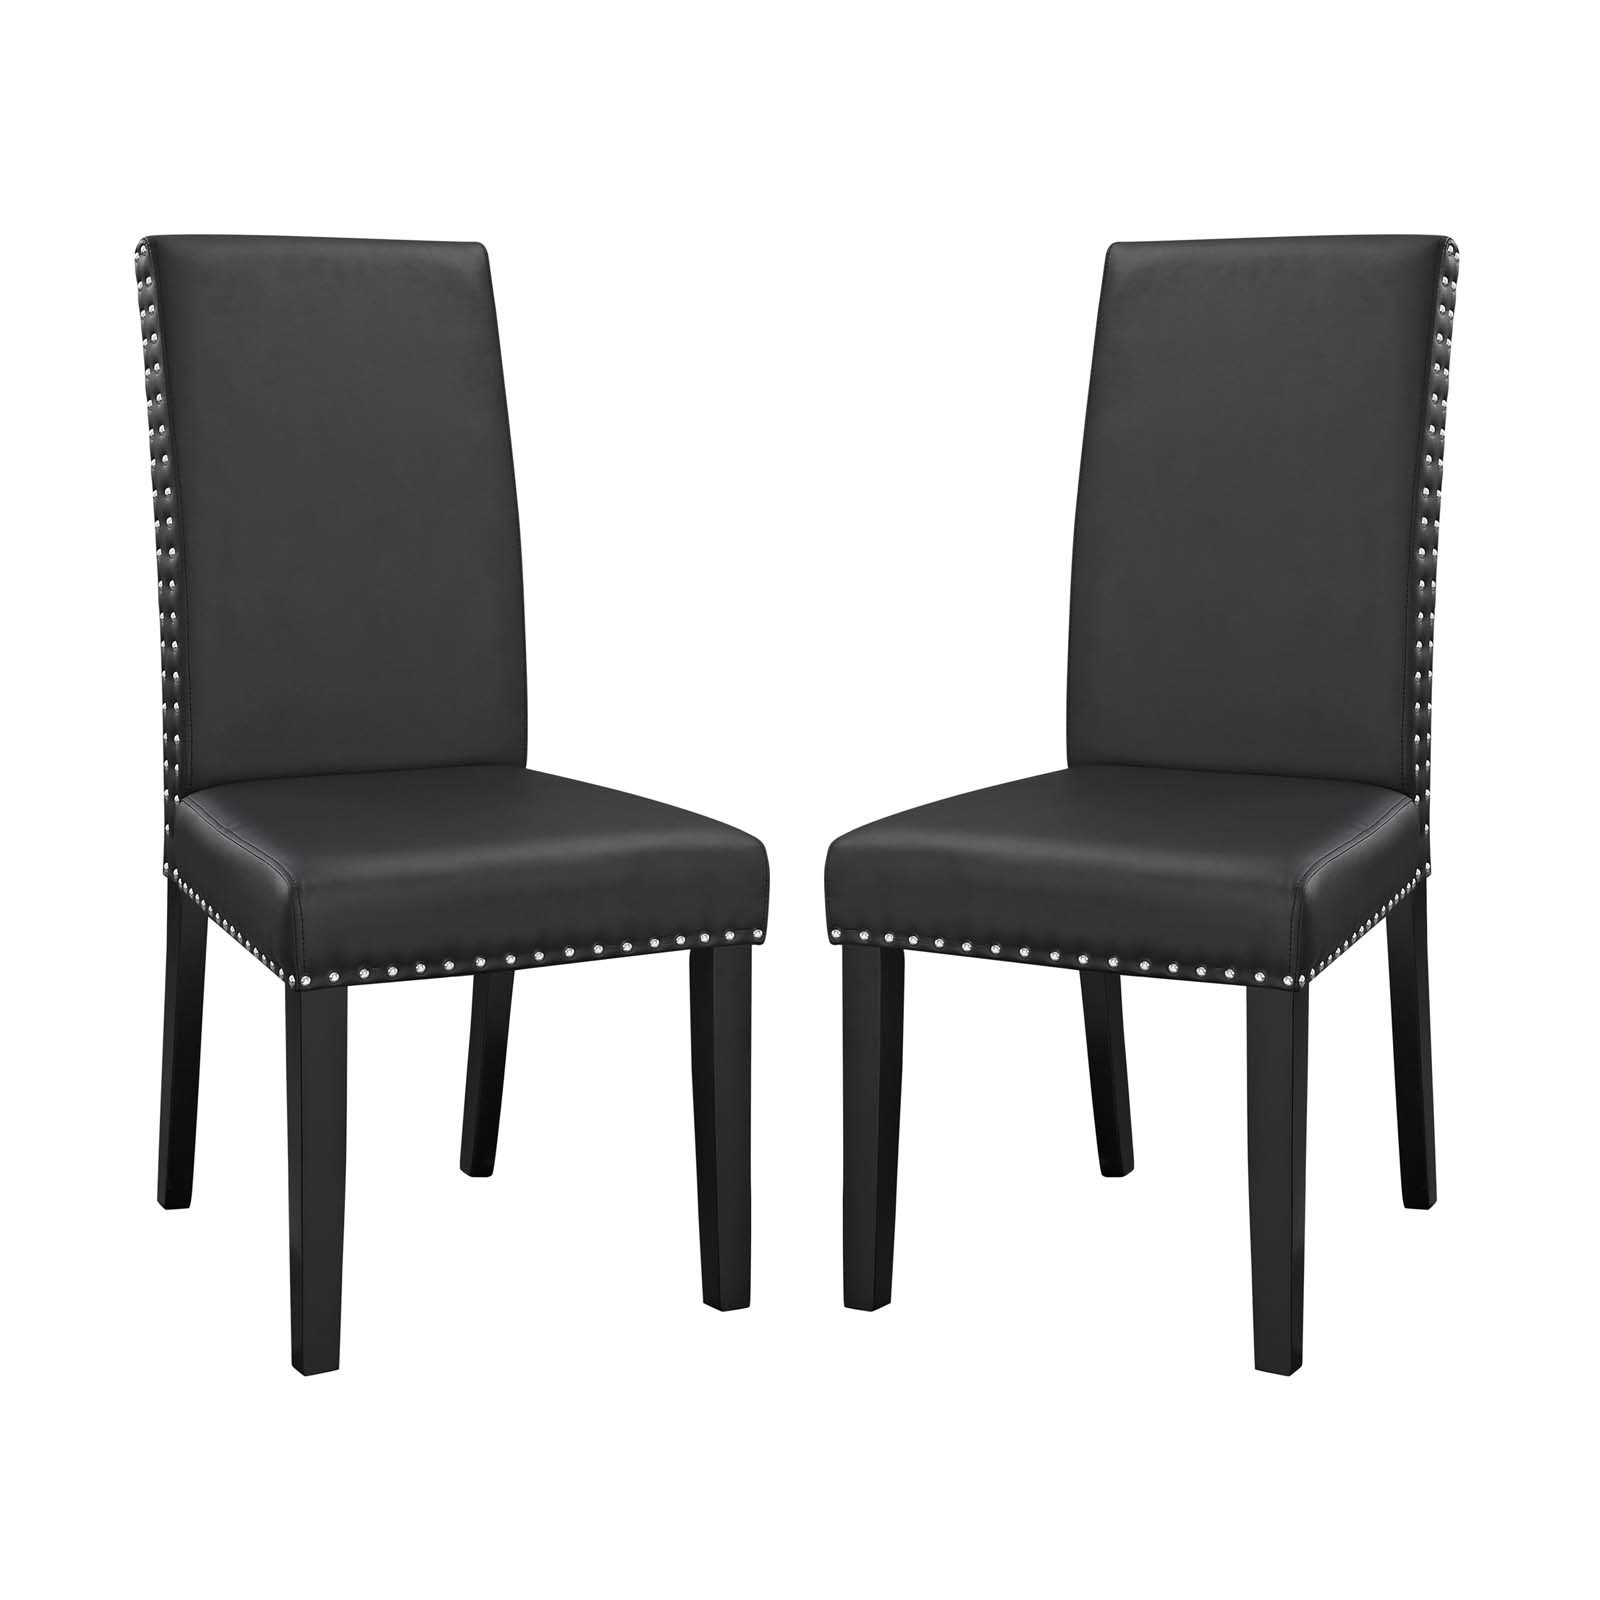 Parcel Dining Side Chair Vinyl Set of 2